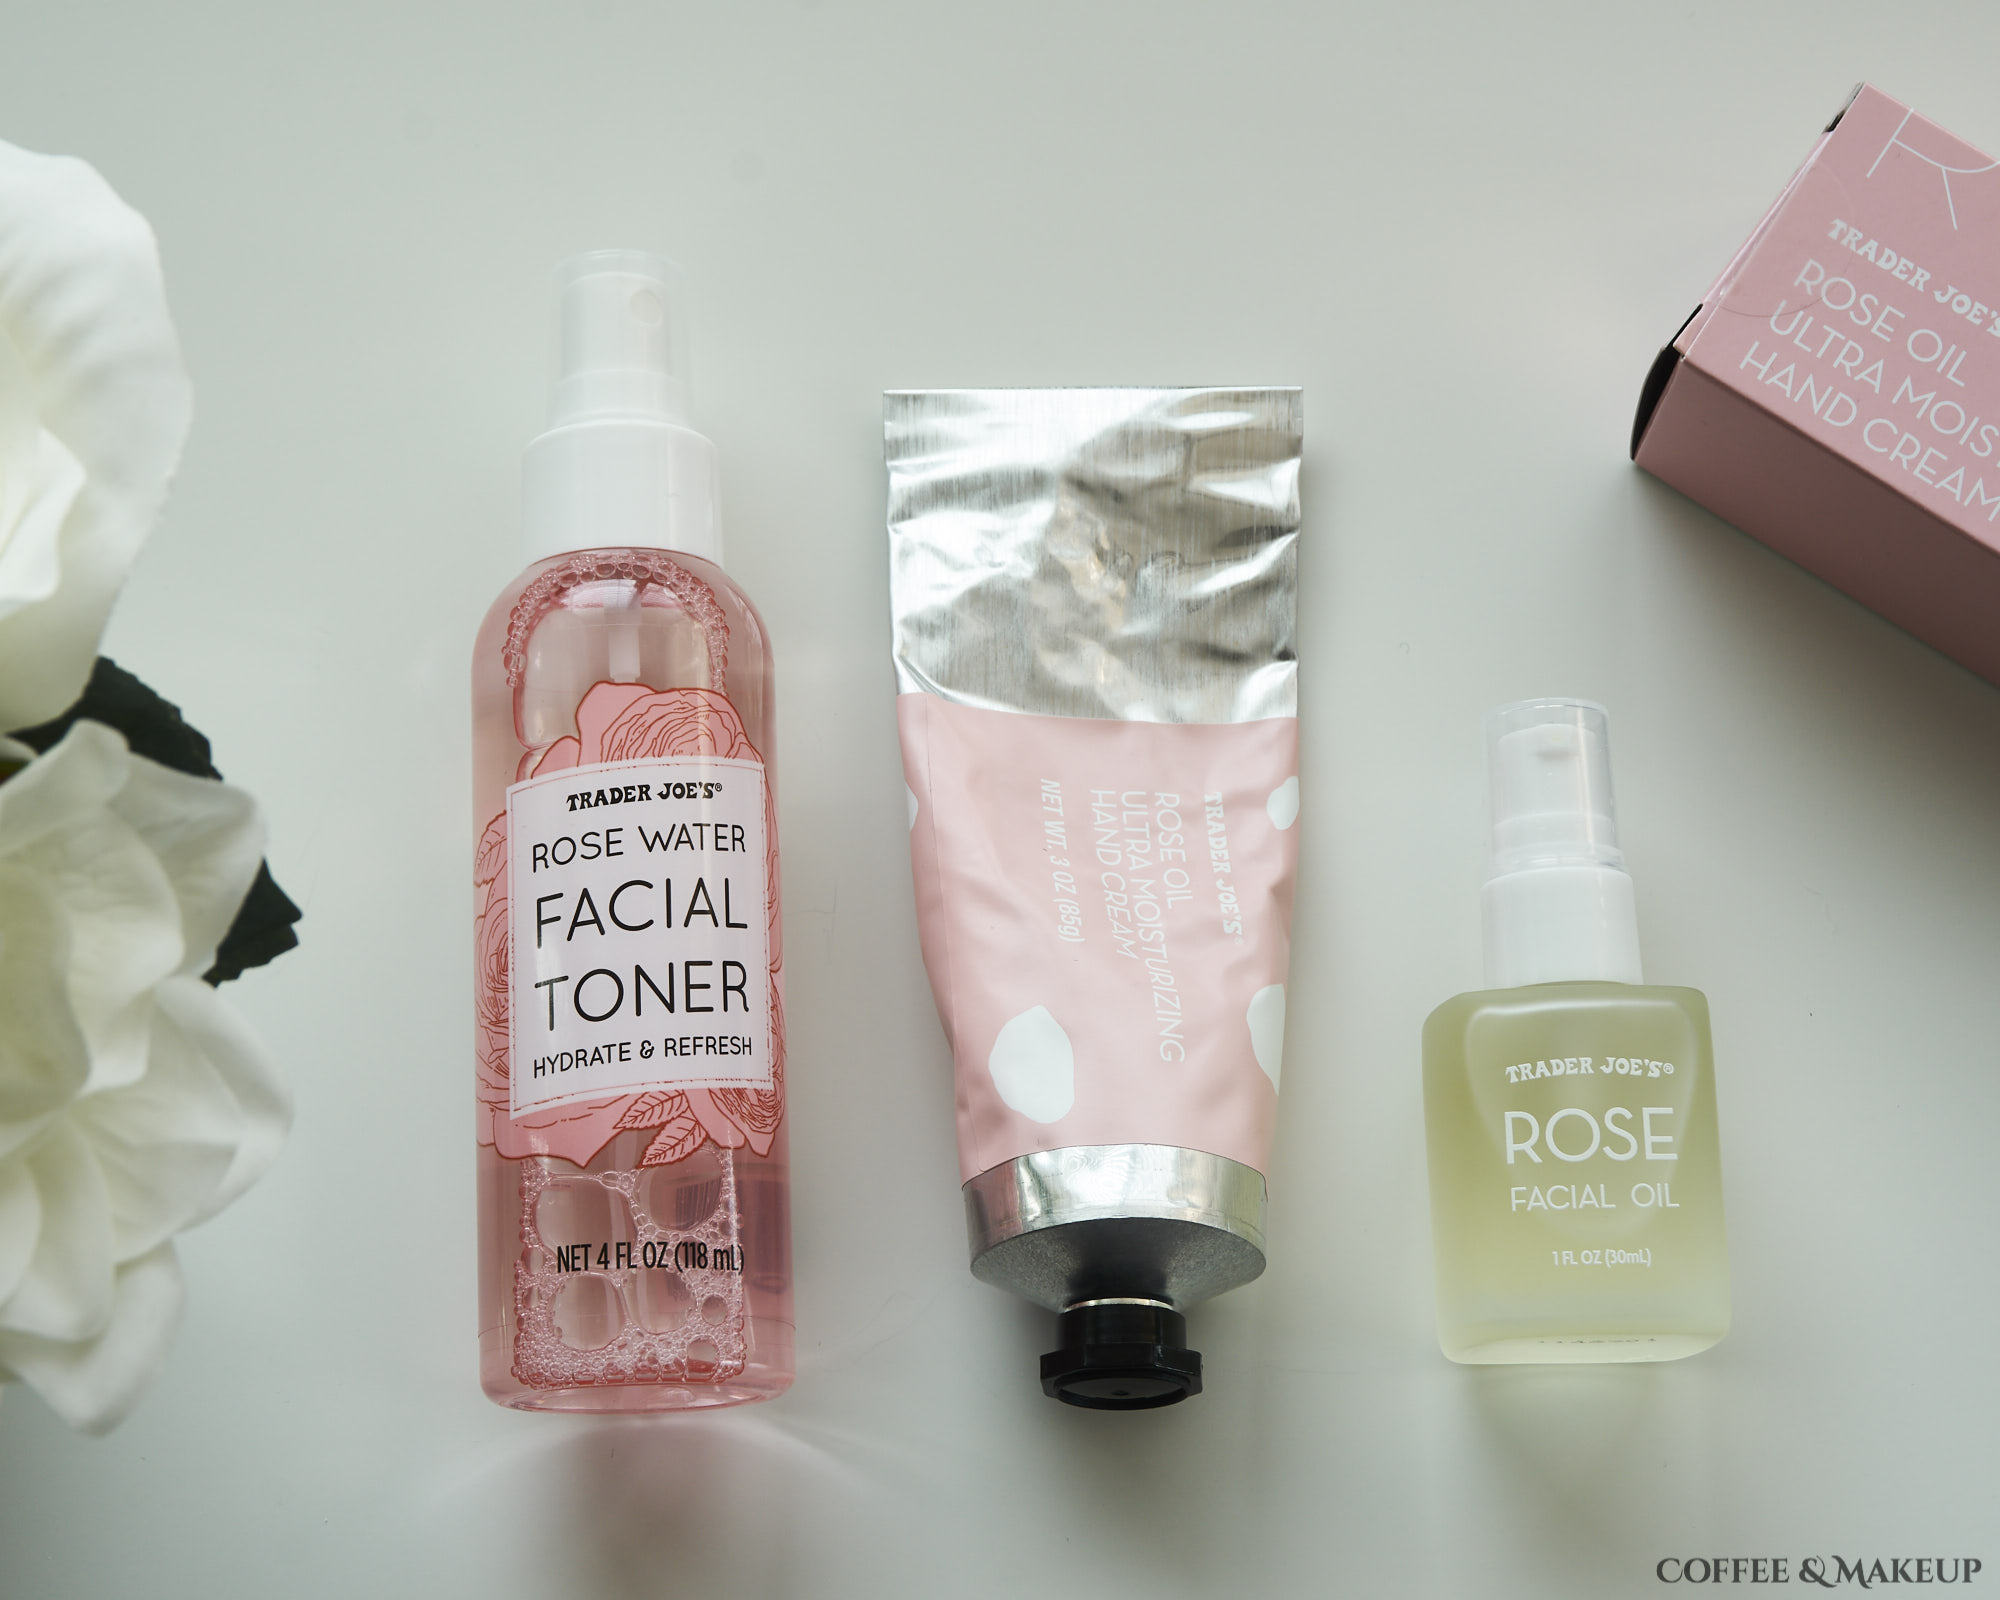 Trader Joe's Rose Water Facial Toner, Rose Oil Ultra Moisturizing Hand Cream, and Rose Facial Oil